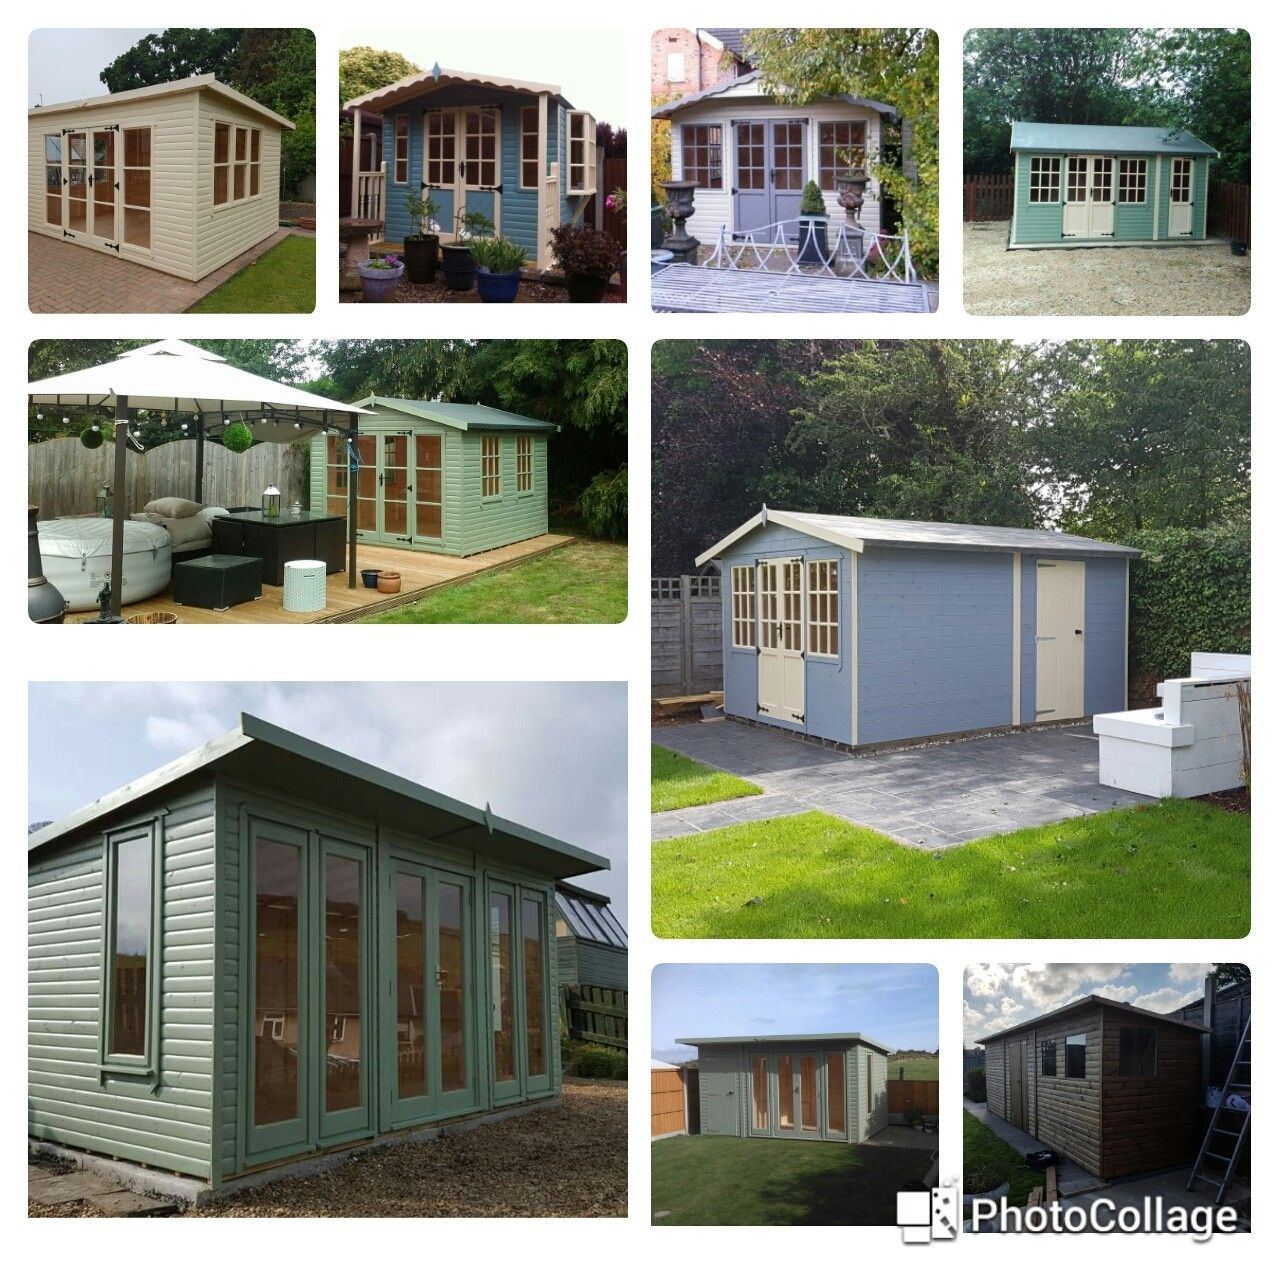 Converting sheds into livable space miniature homes and spaces - Converting Sheds Into Livable Space Miniature Homes And Spaces